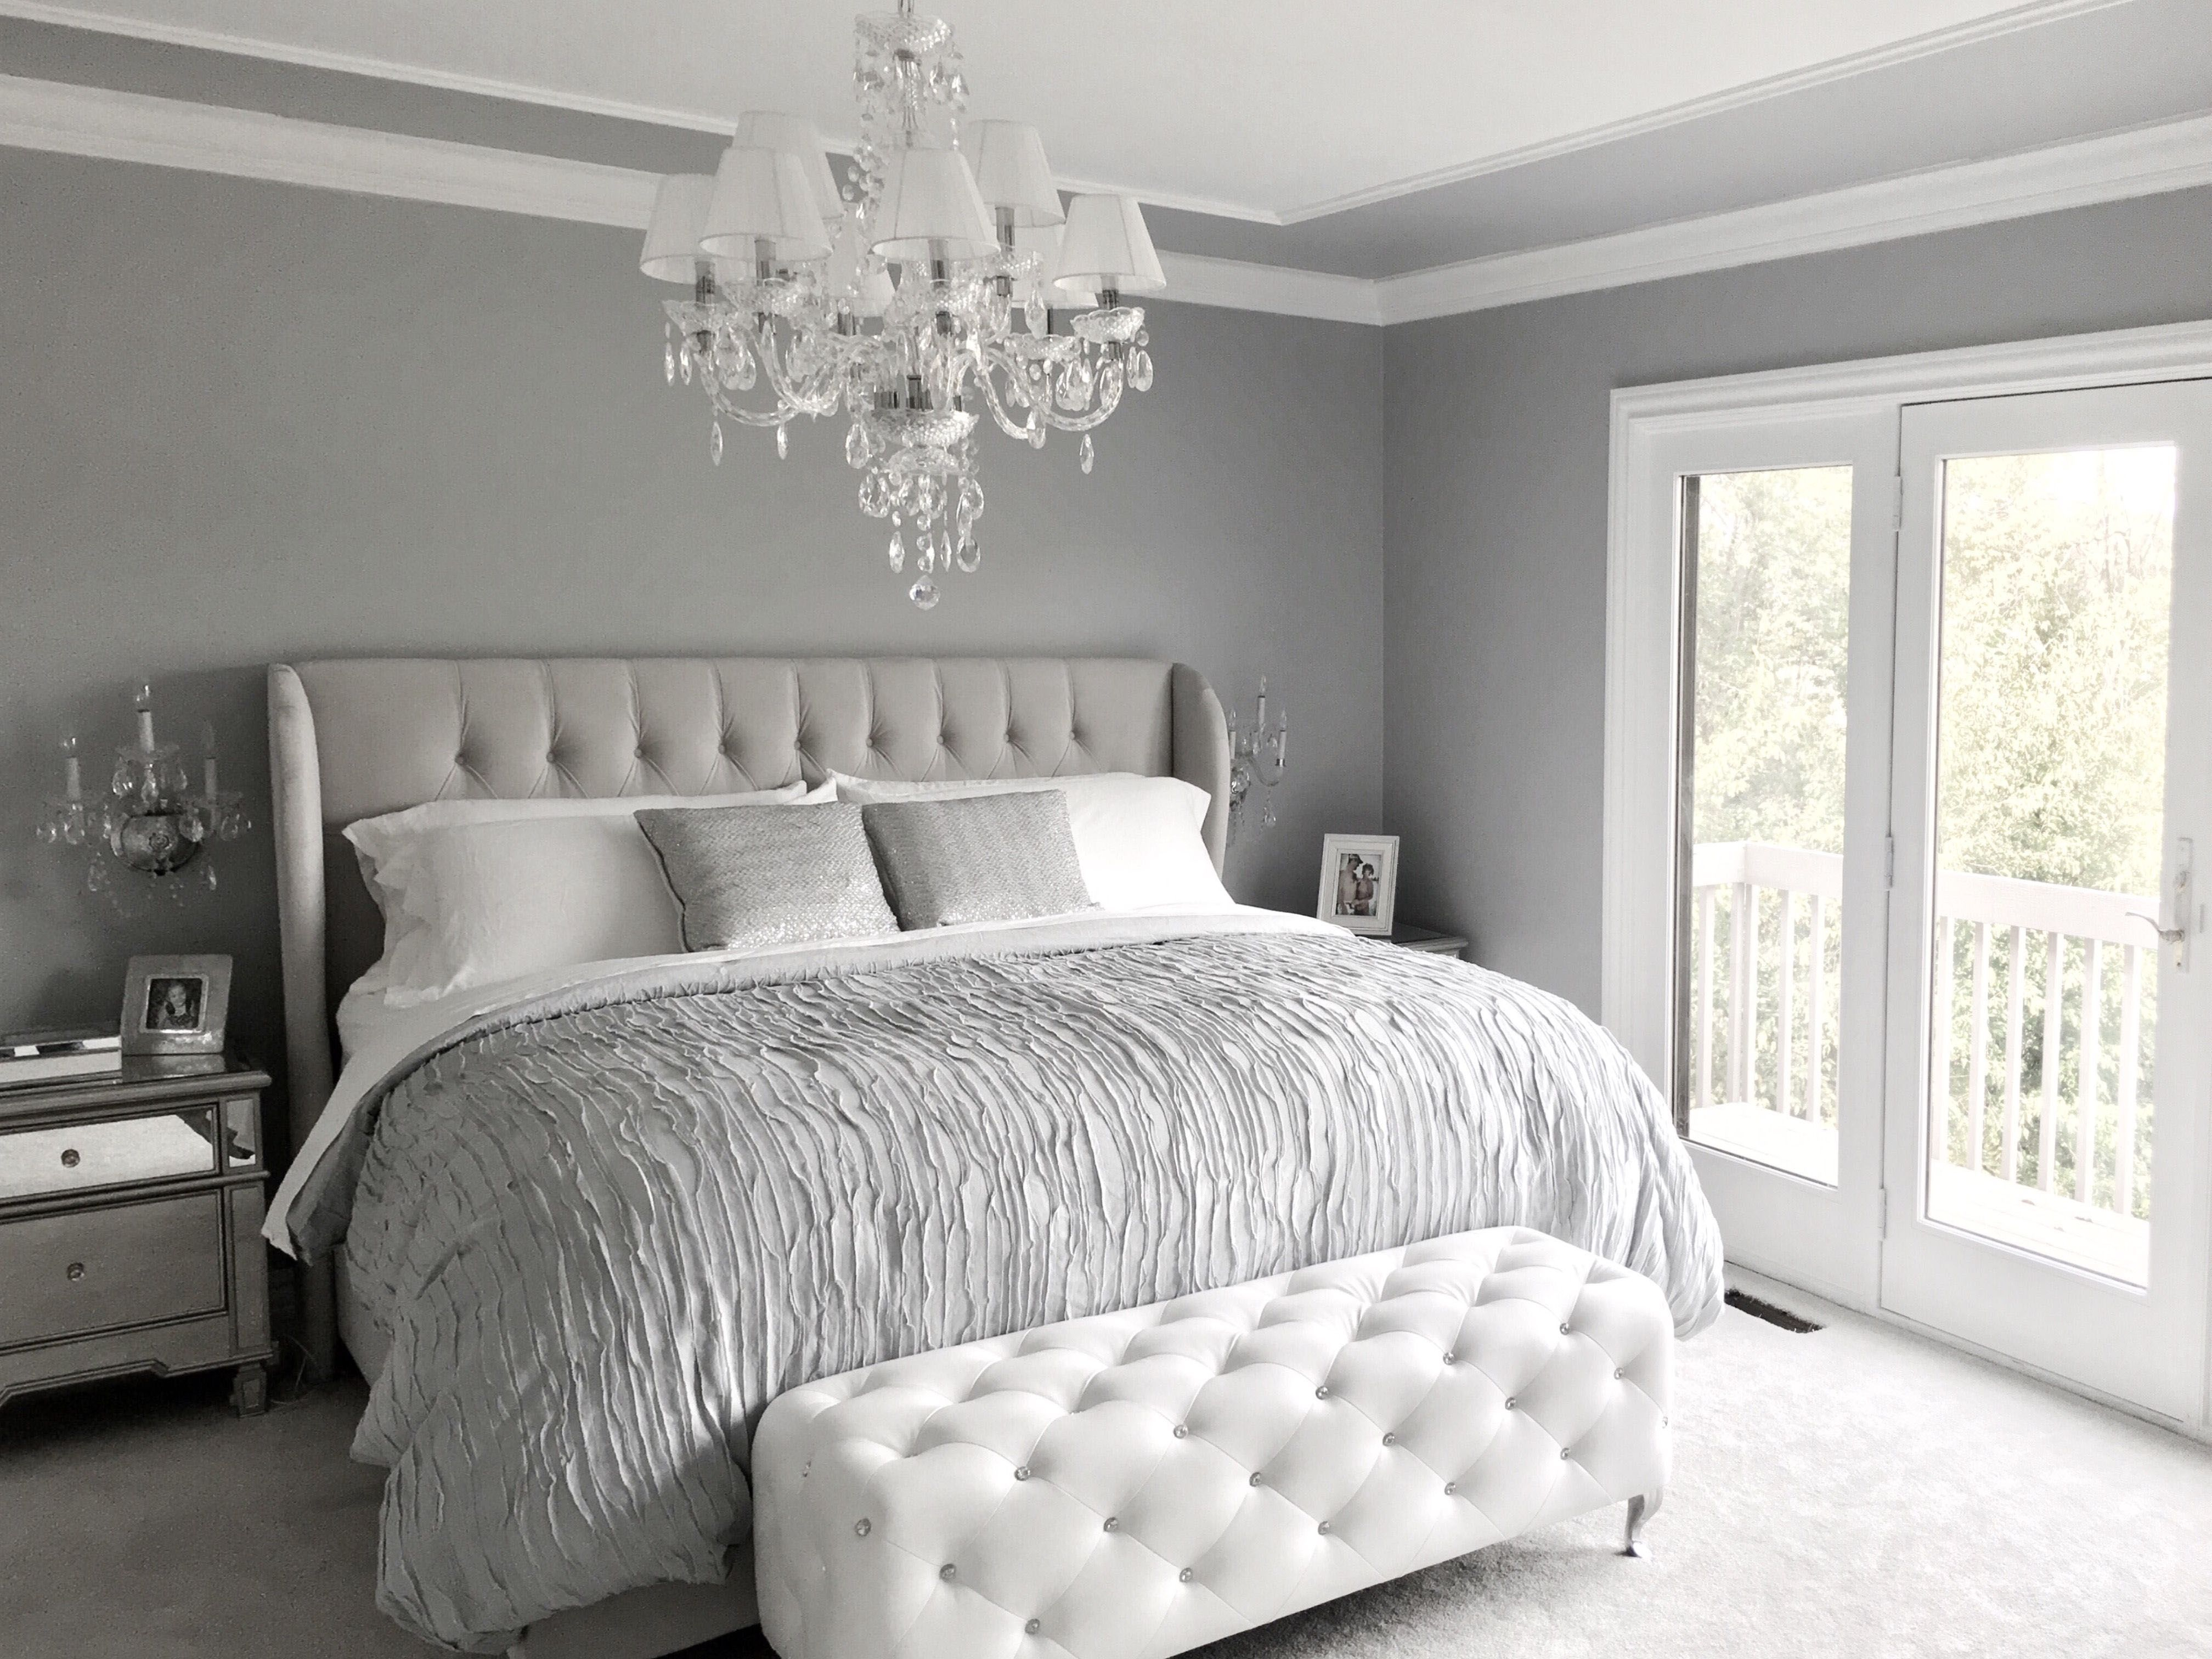 New Grey Mustard Bedroom Ideas Exclusive On Shopy Home Decor